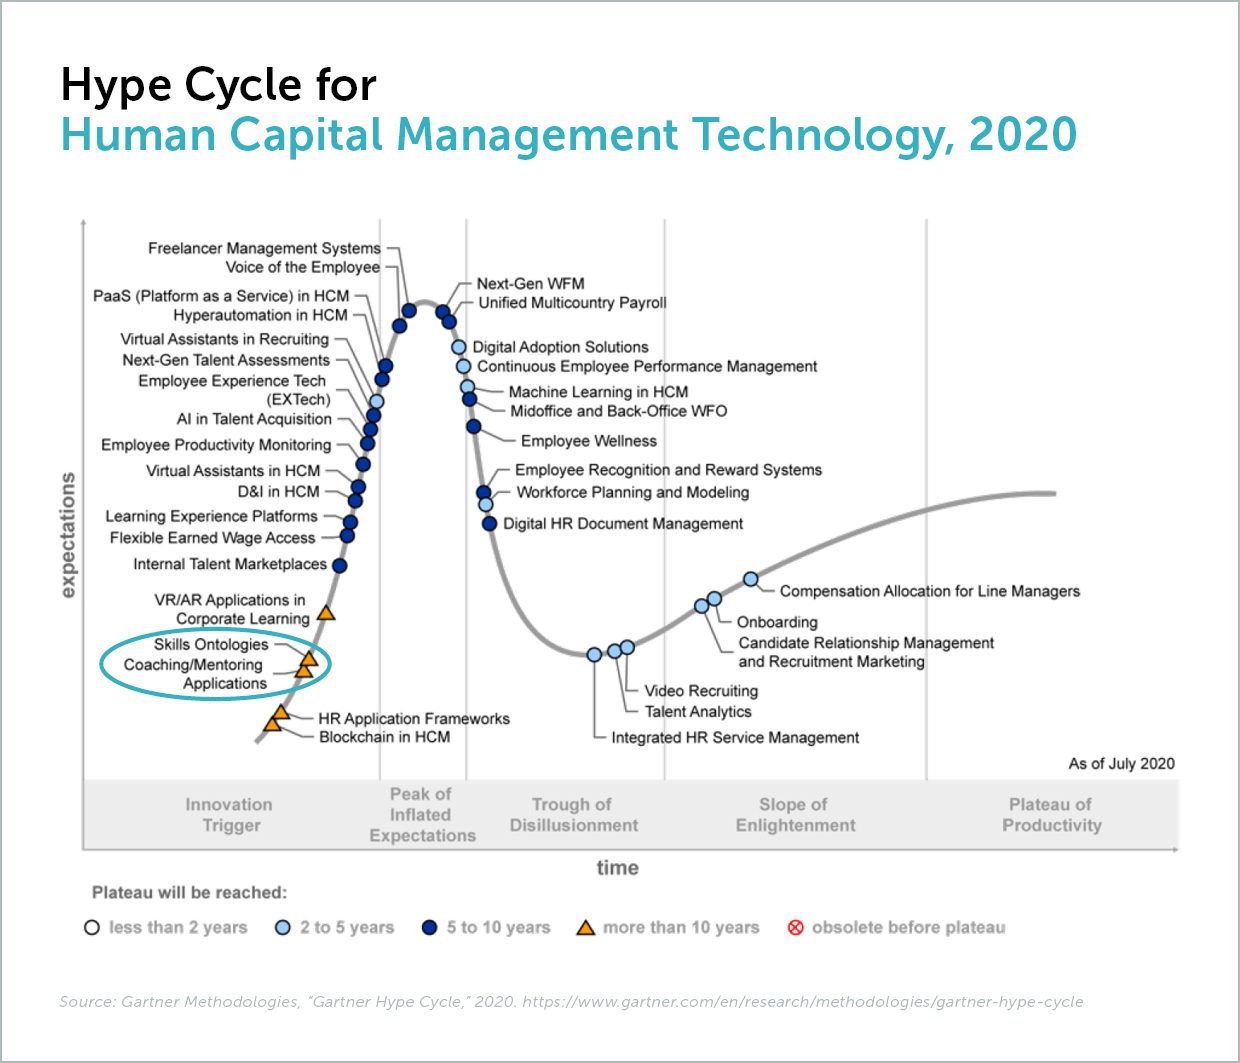 JANZZ named as a Sample Vendor for Skills Ontologies in Gartner Hype Cycle for HCM Tech 2020